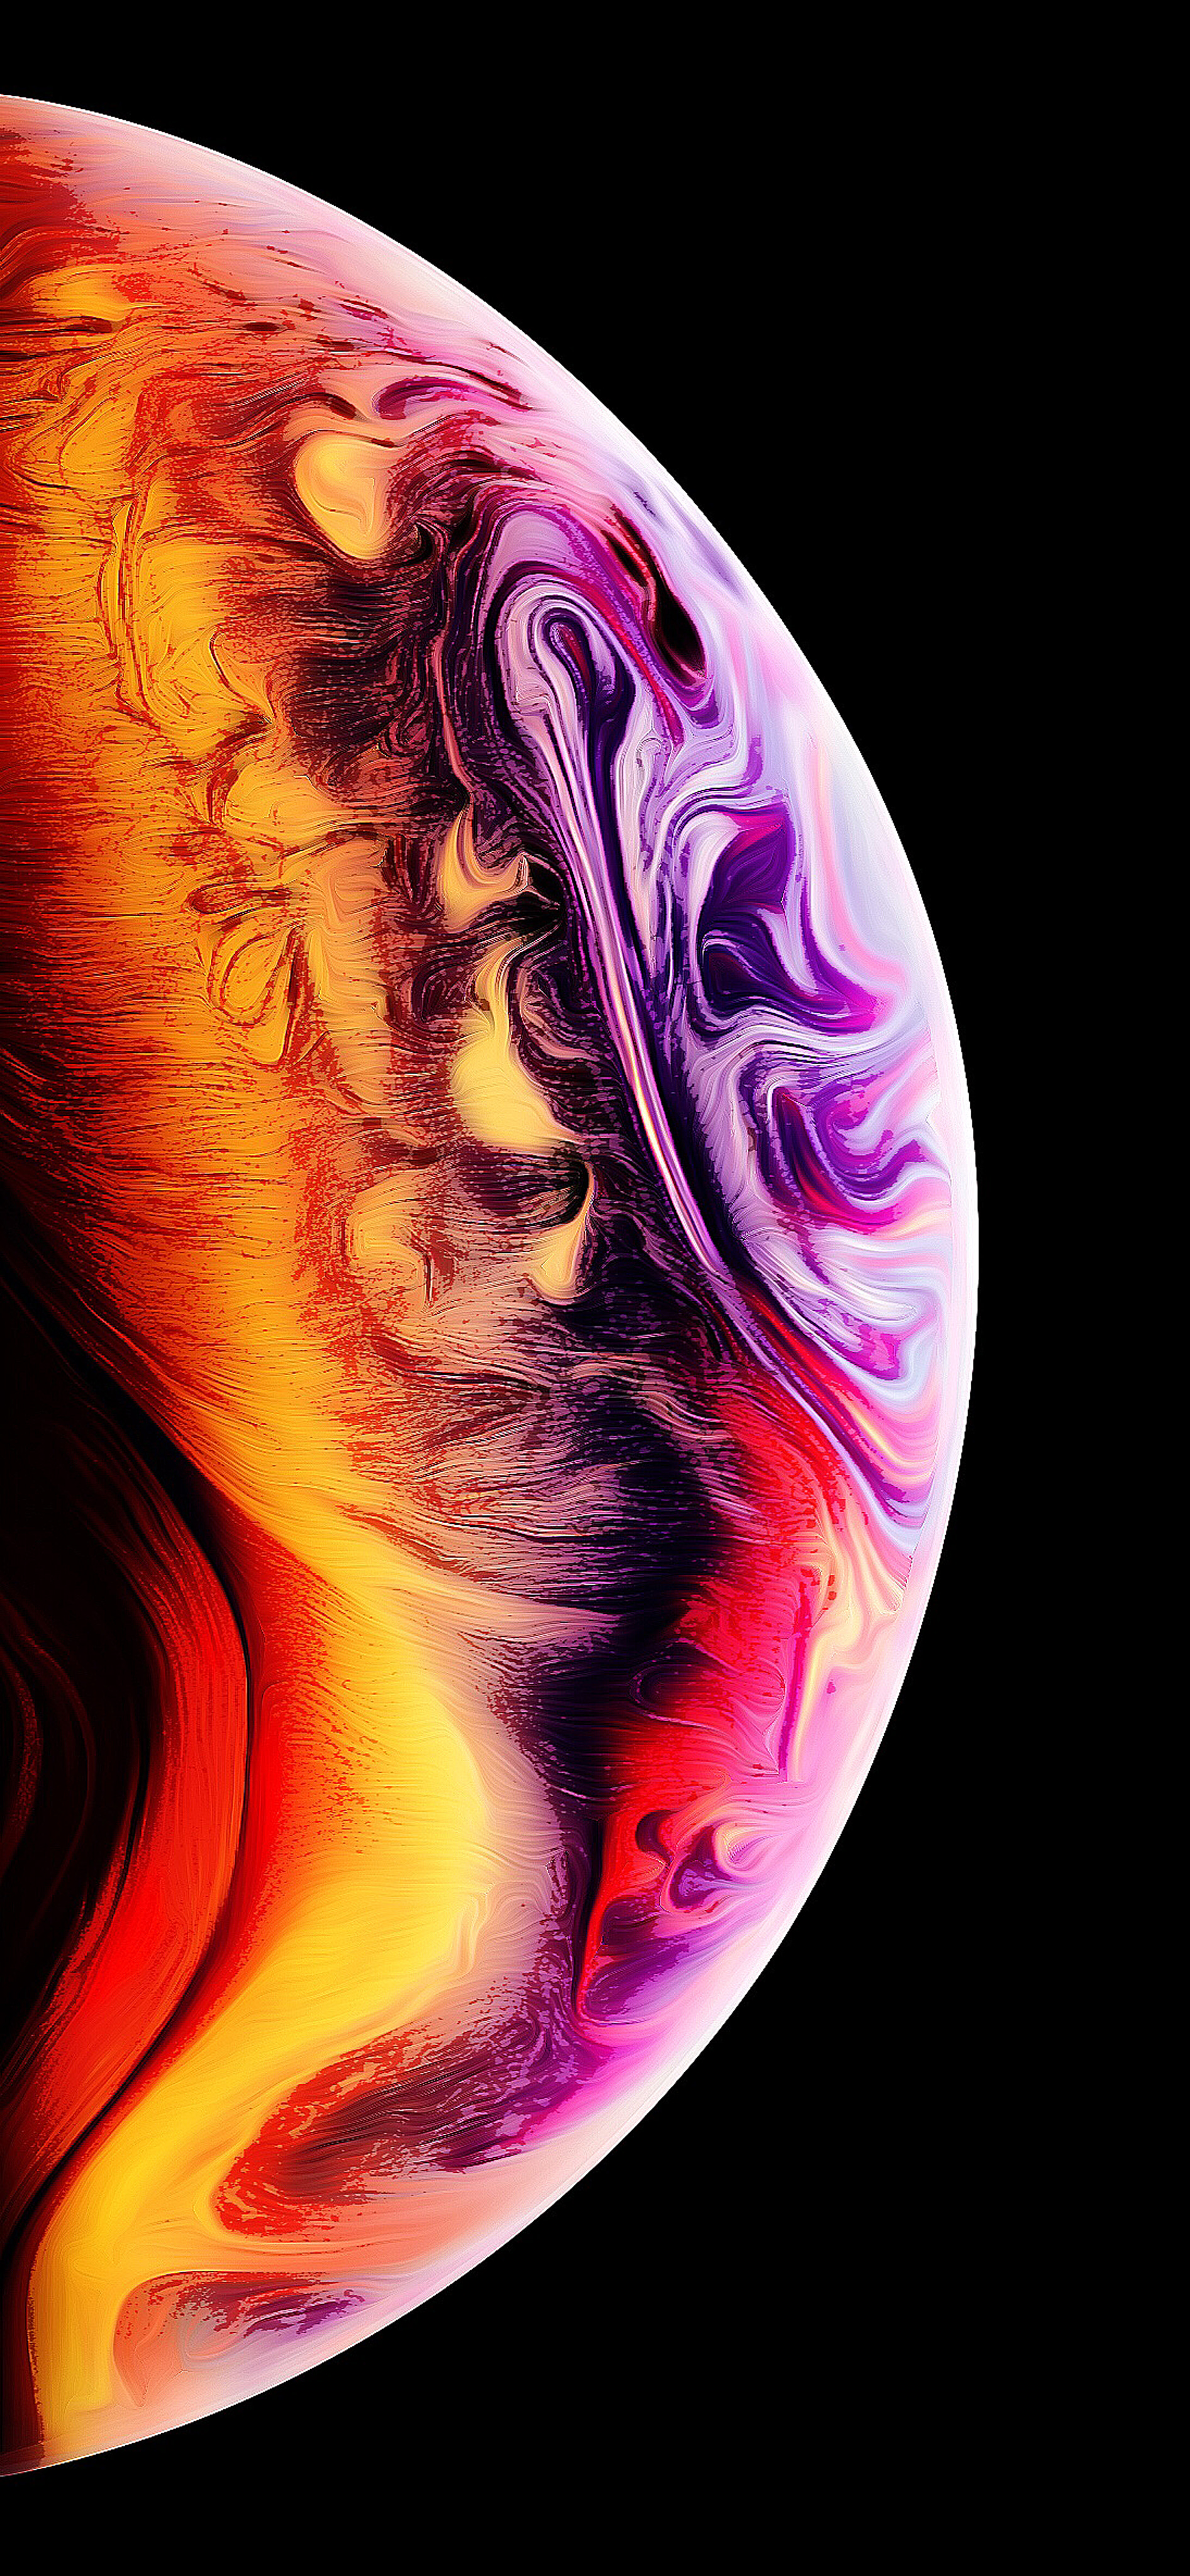 Download Iphone Xs Marketing Wallpaper For Any Iphone